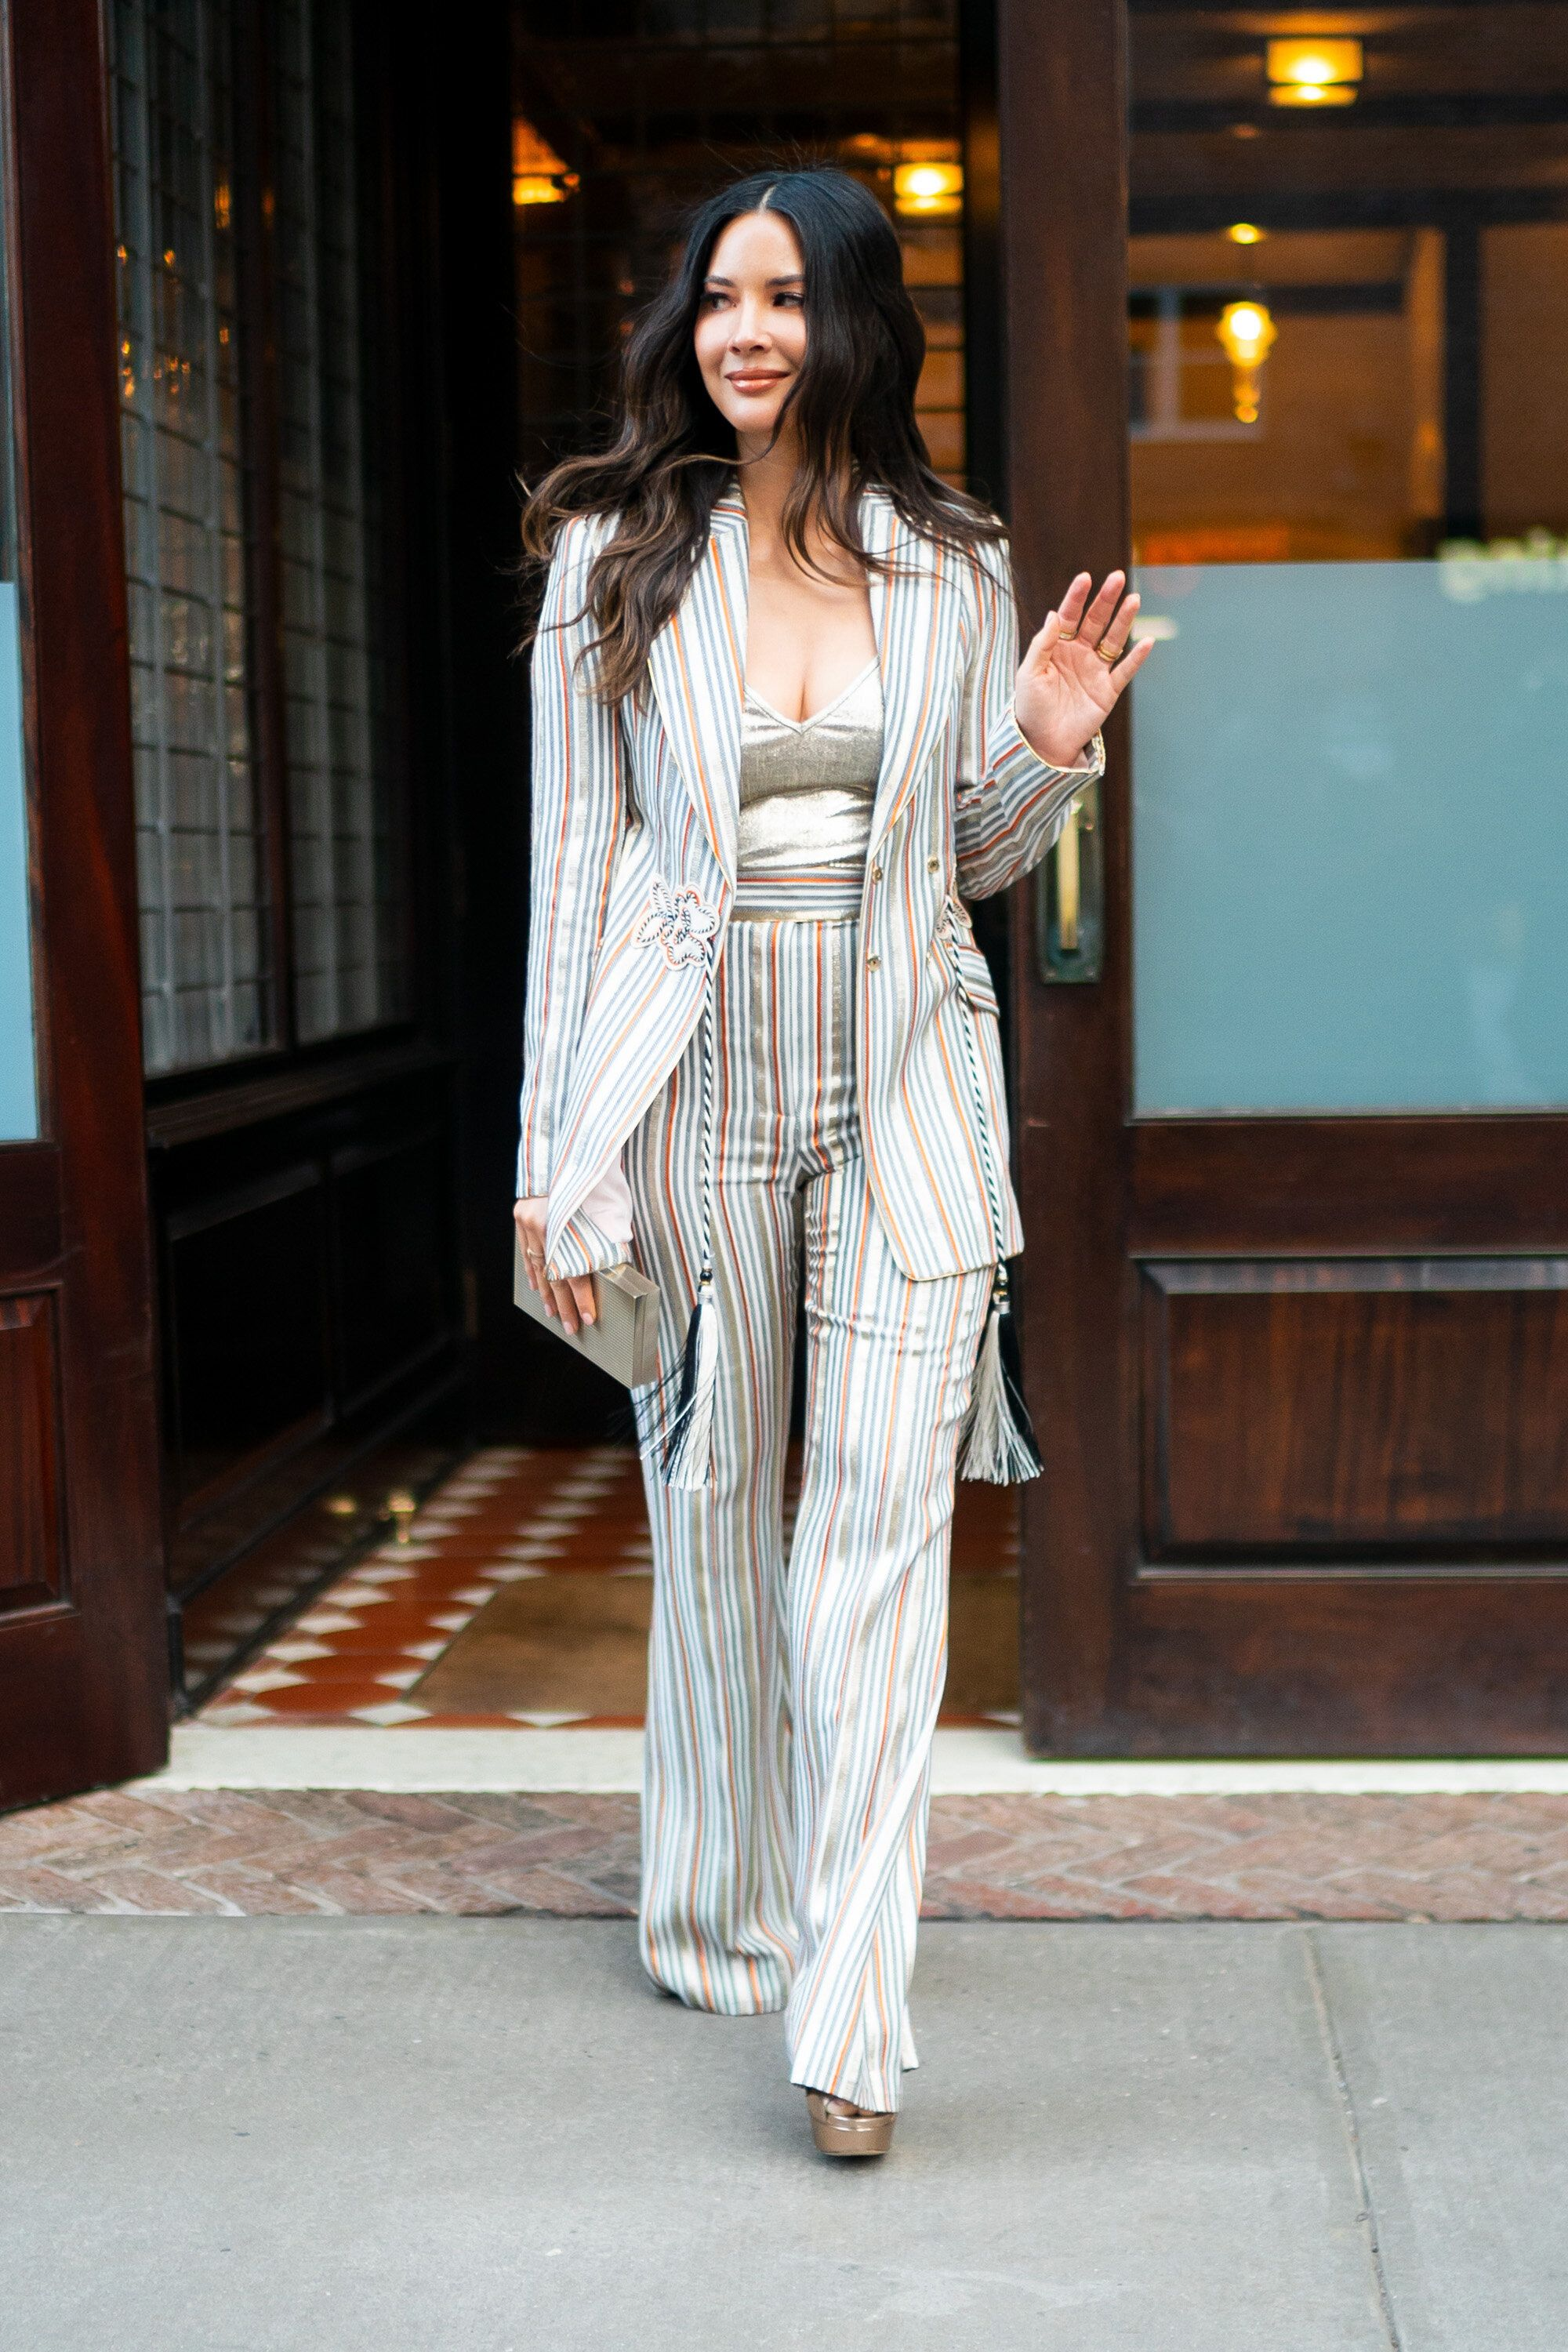 NEW YORK, NEW YORK - APRIL 17: Olivia Munn is seen in Tribeca on April 17, 2019 in New York City. (Photo by Gotham/GC Images)